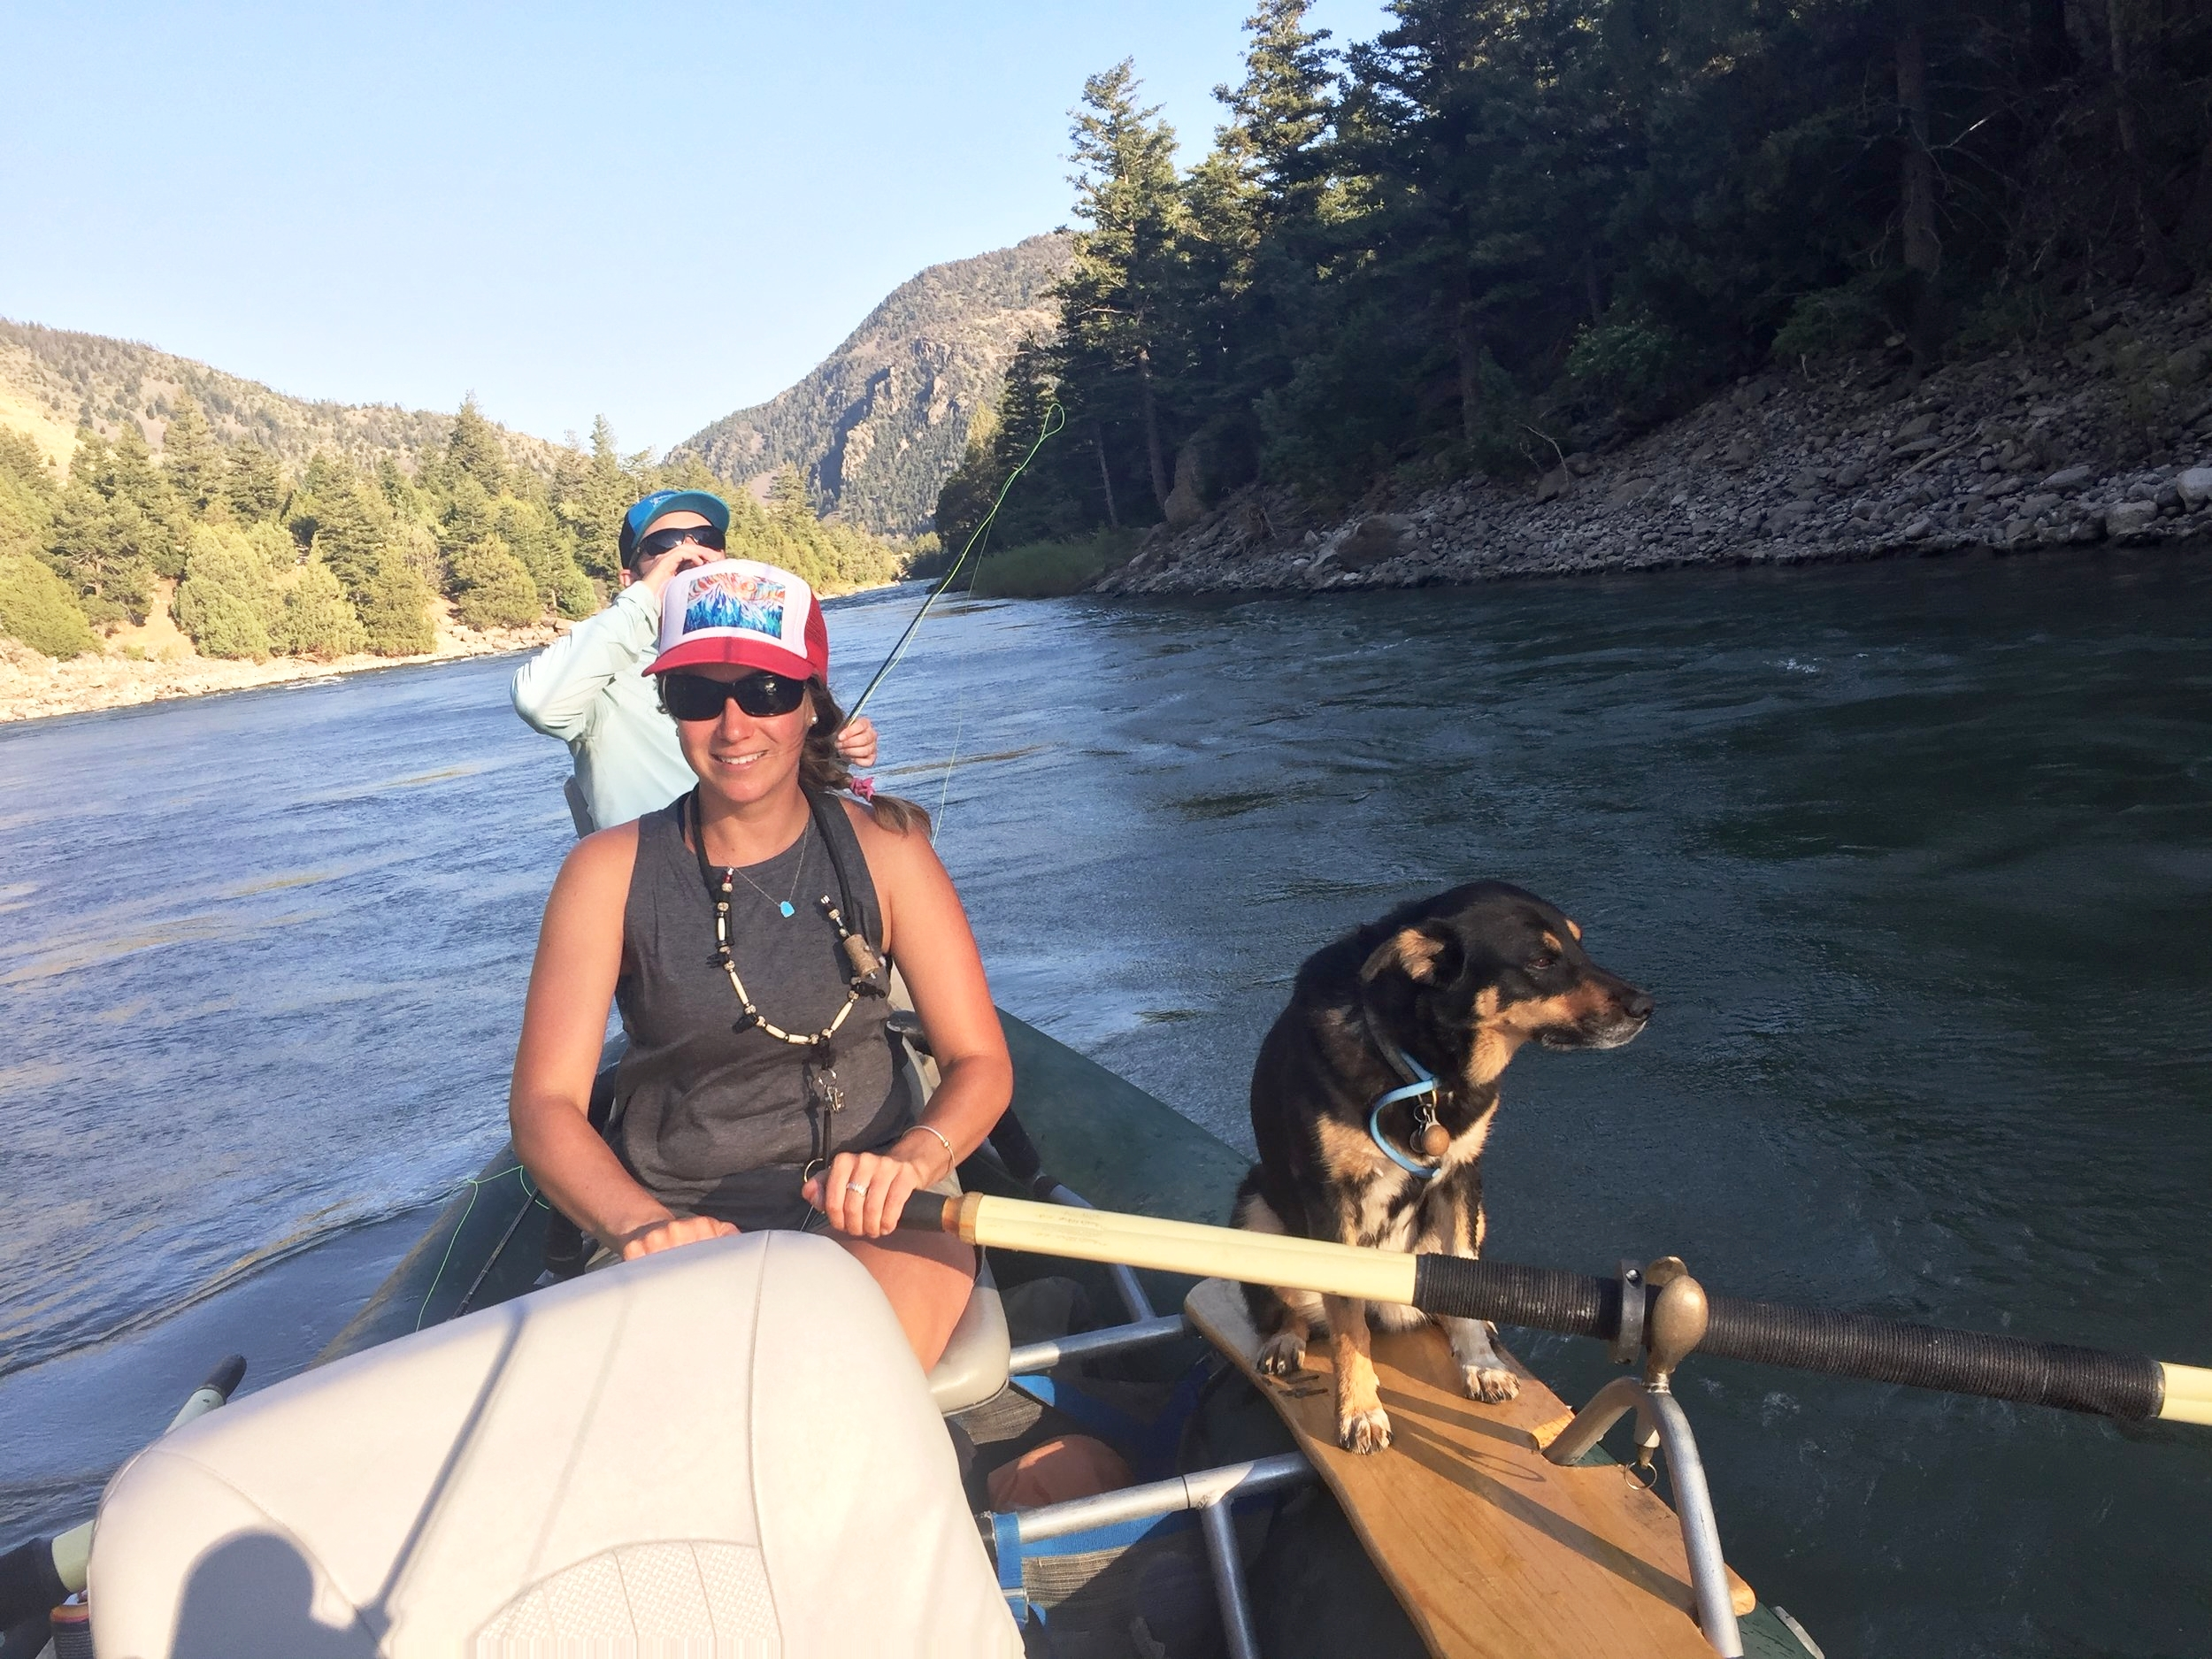 7/15/2018-Guide in training, Mollymoo, showing off her rowing skills through the Canyon.